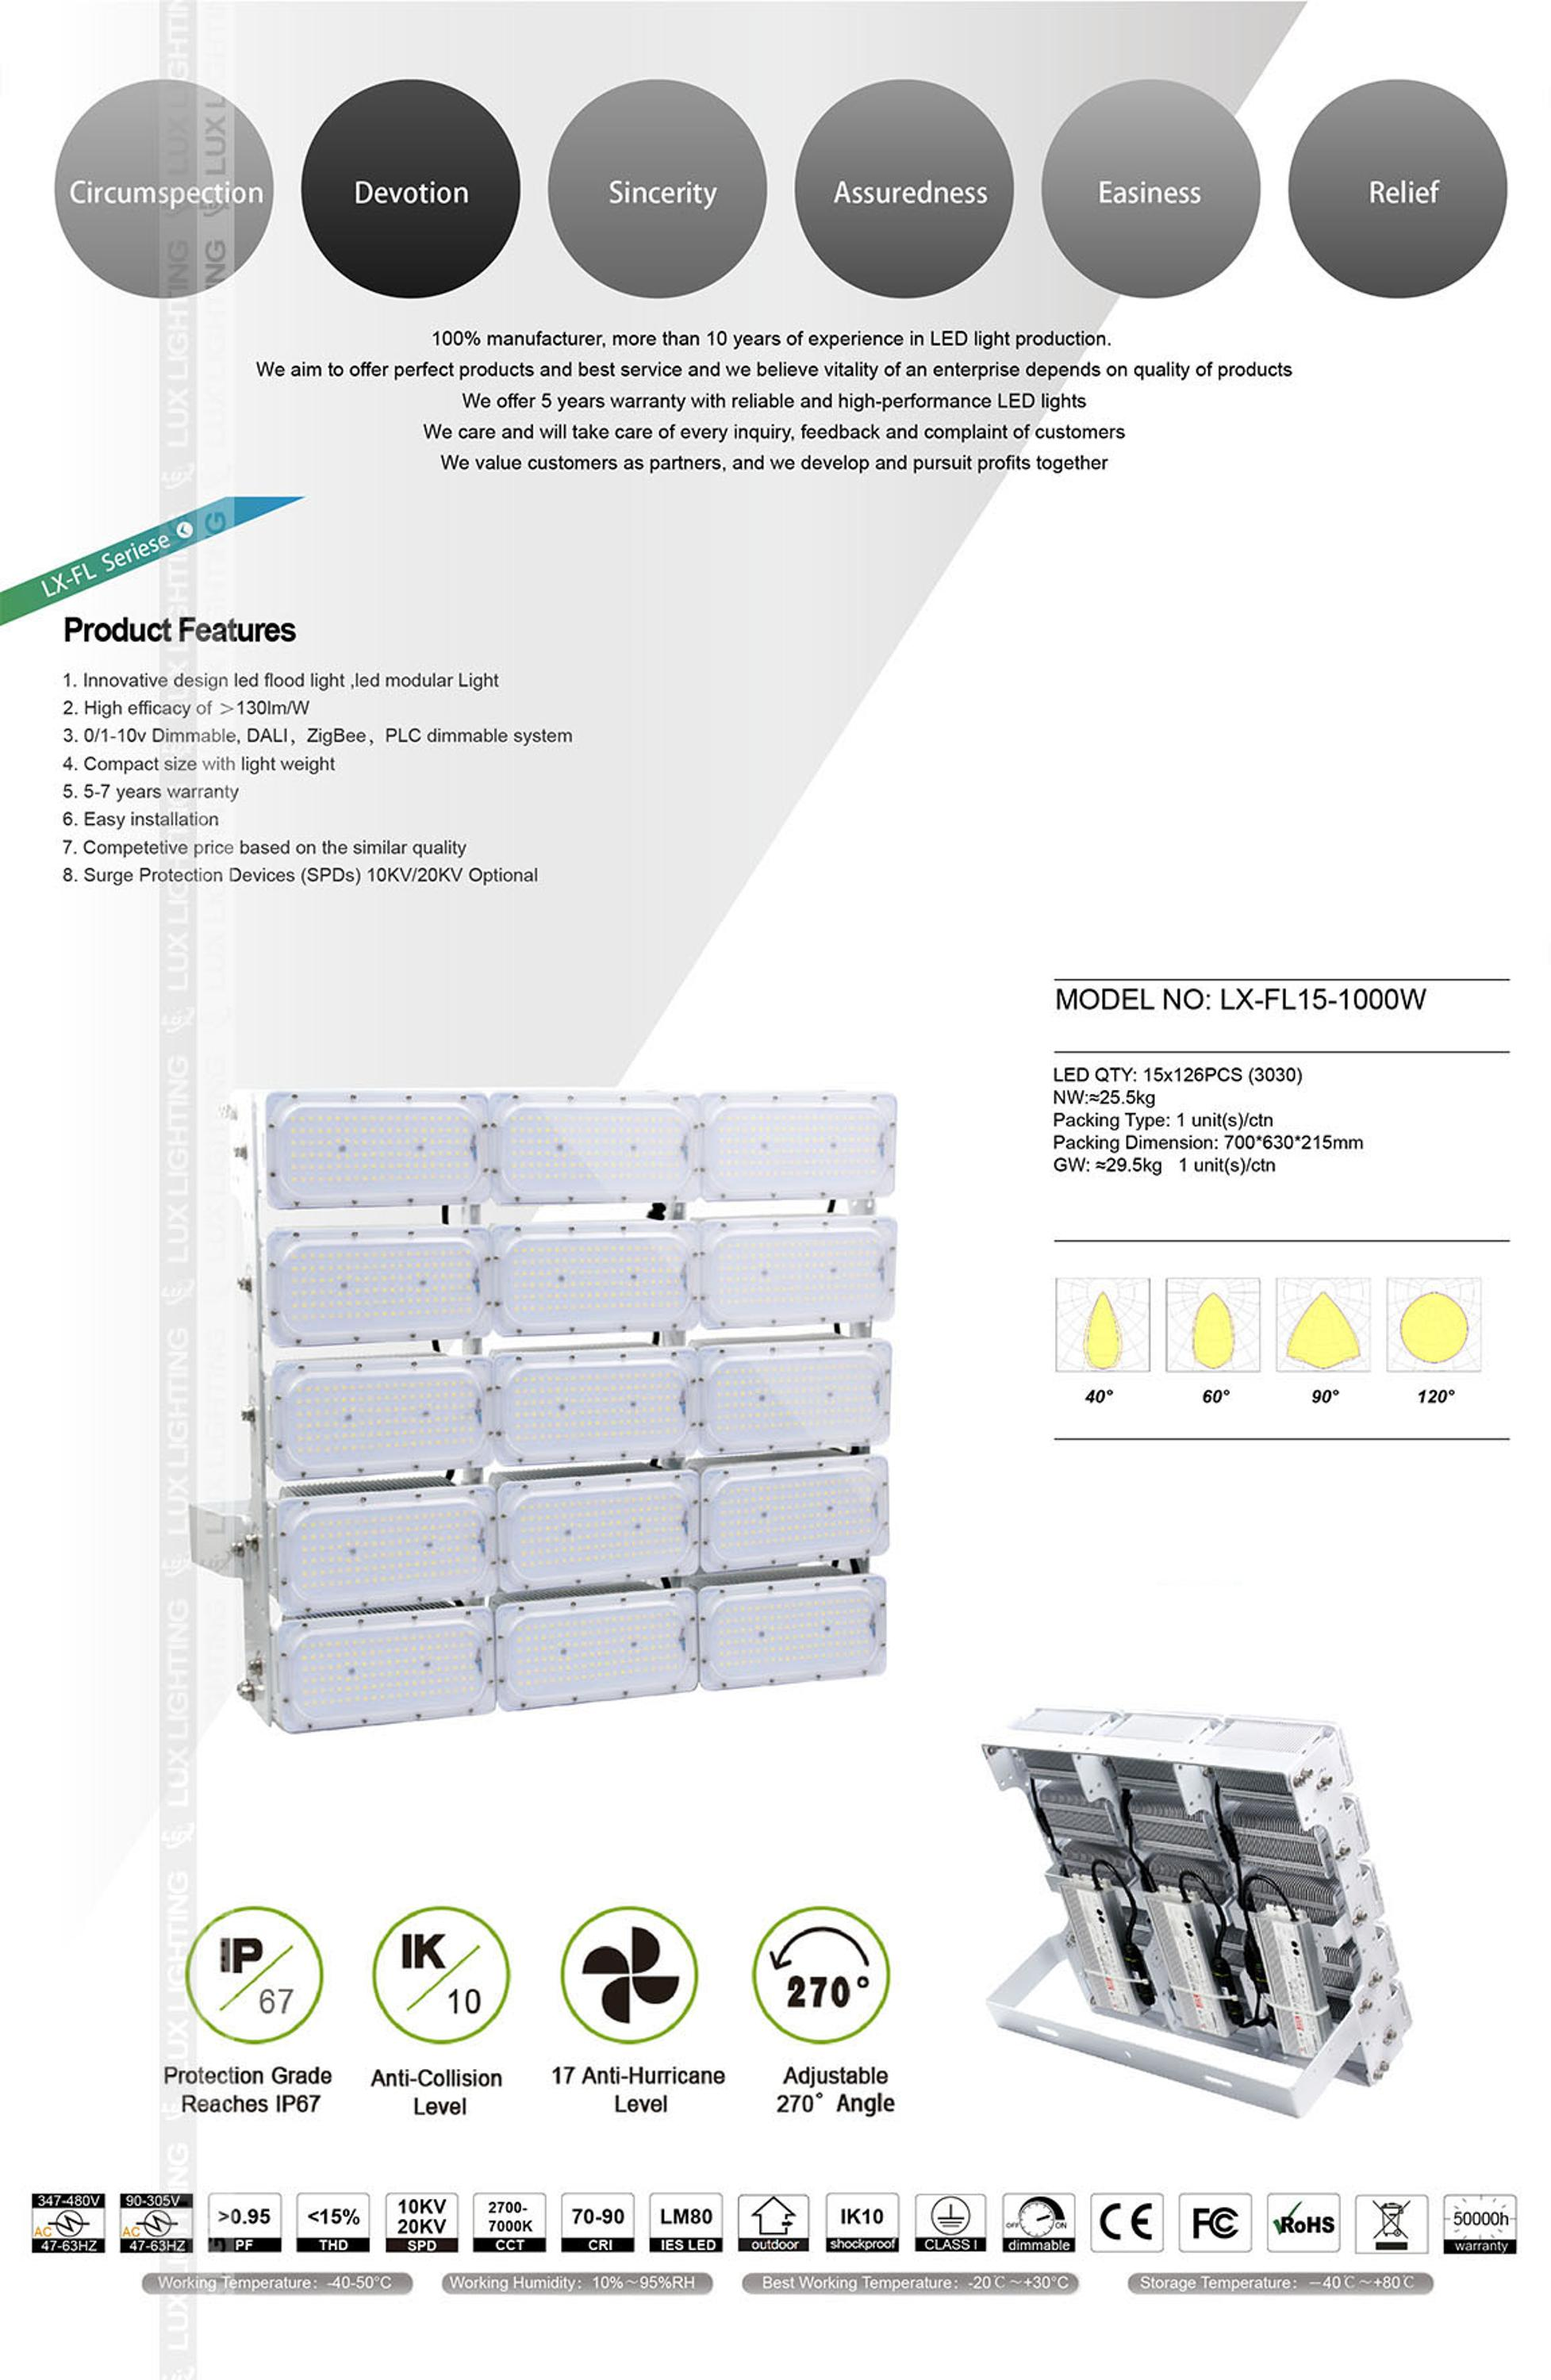 high lumen output 240v 277V dimmable 1000w brightest flood light